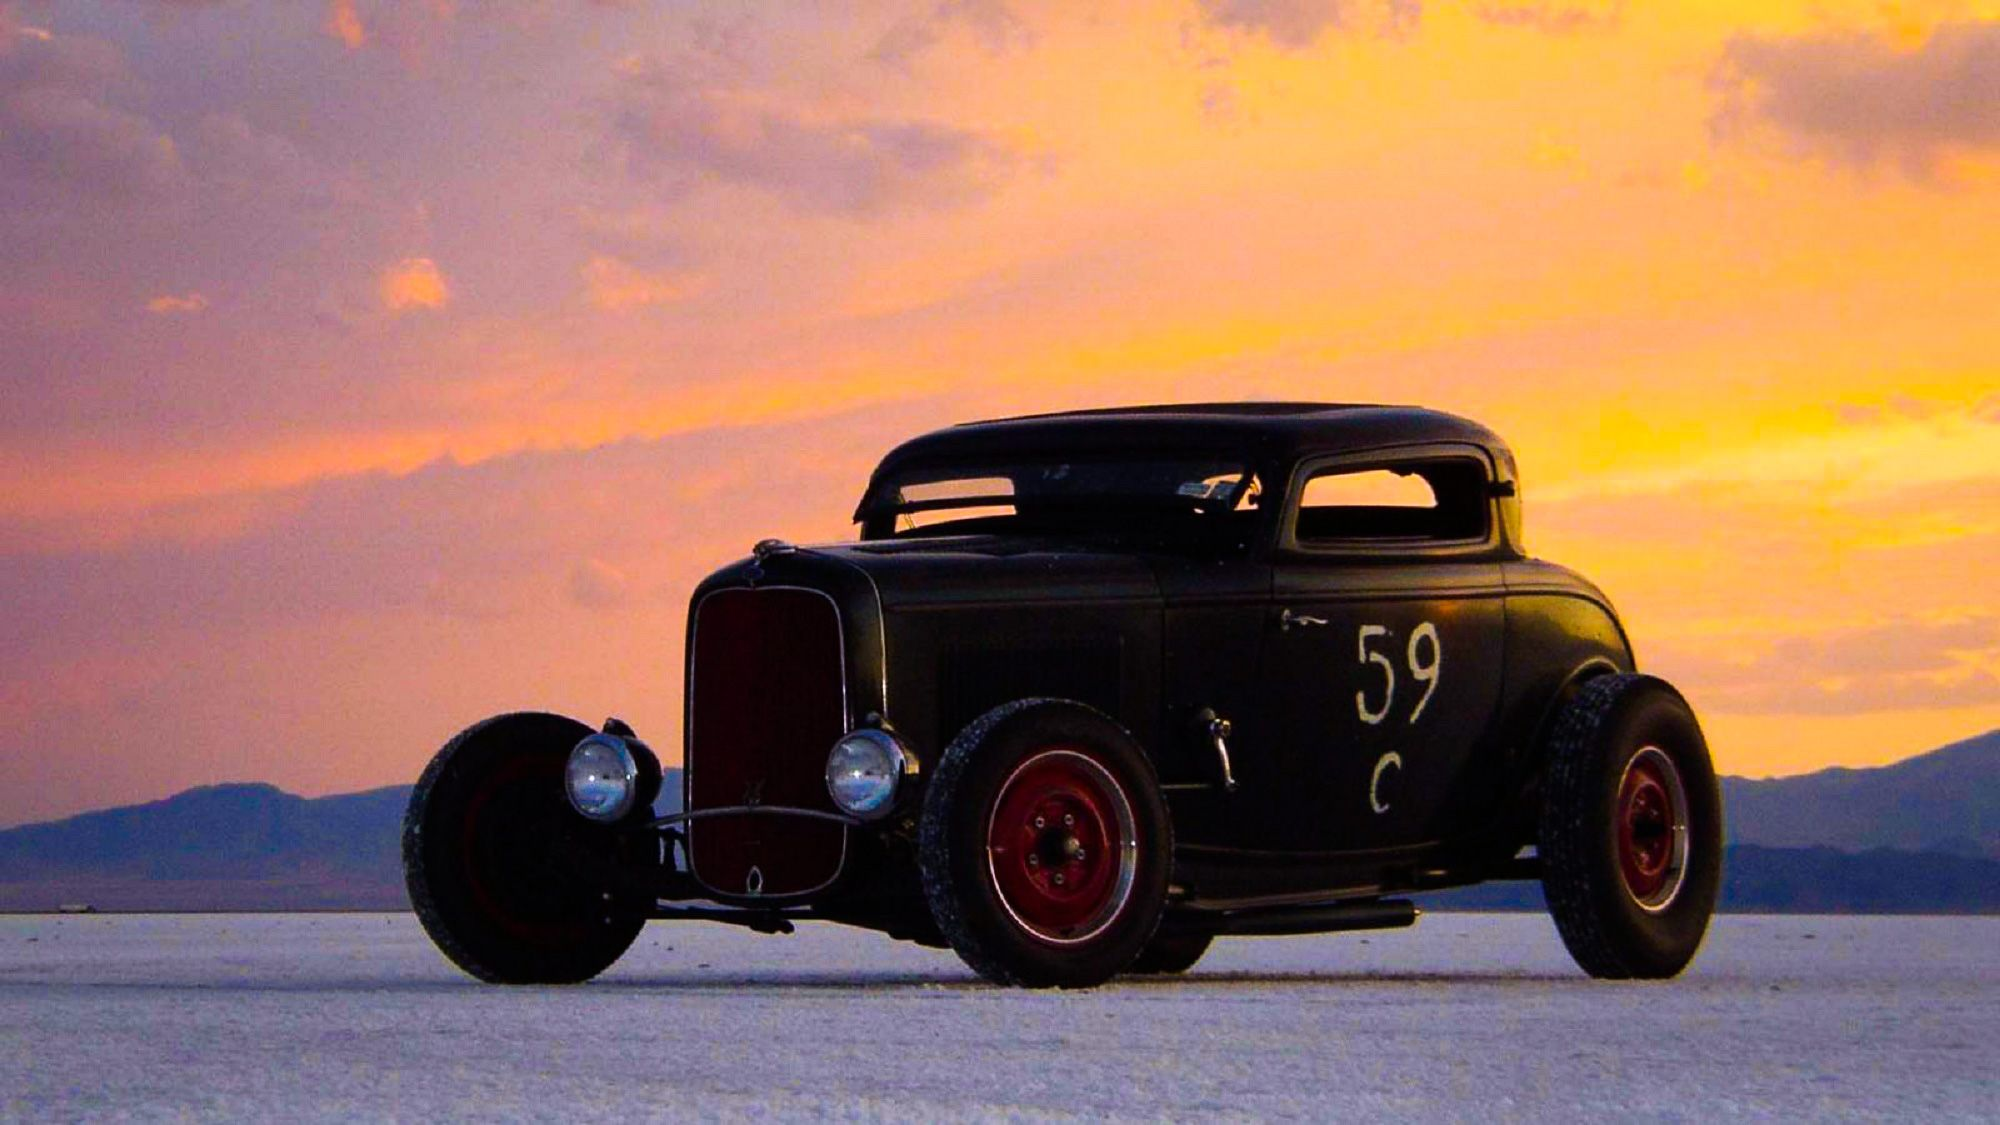 Old Hot Rod | Cod\'s Cars | Pinterest | Old hot rods and Hot rods